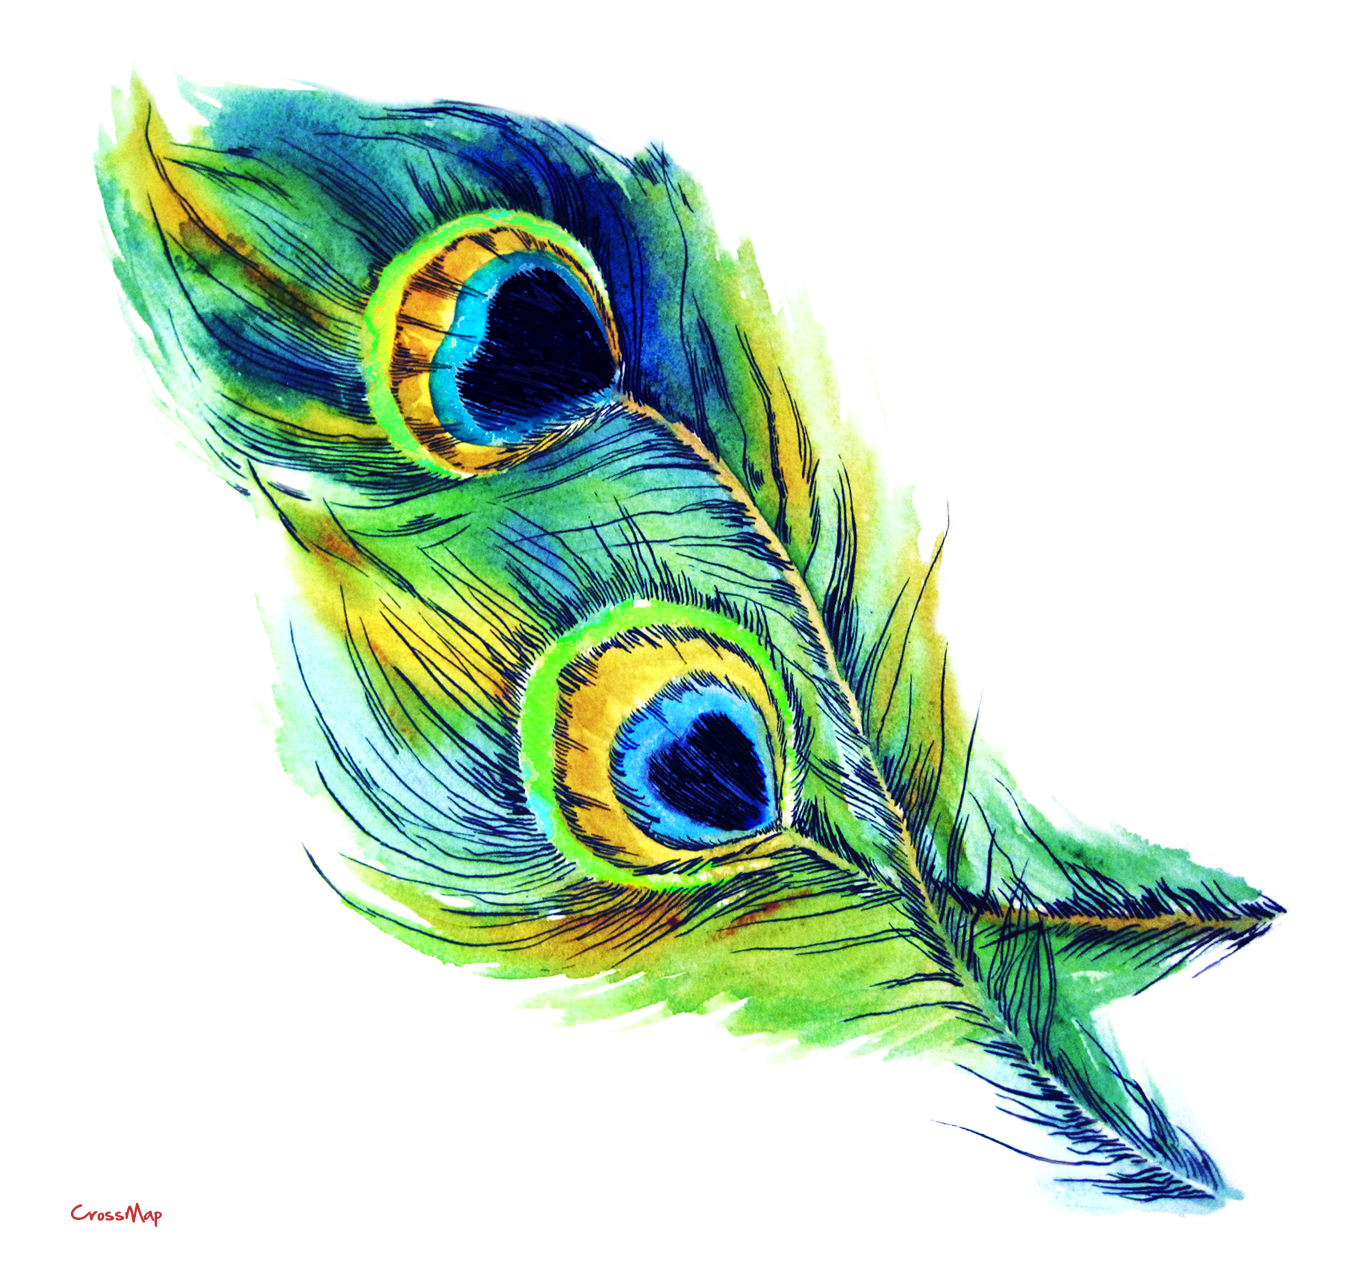 Eye christian clip art. Feather clipart colorful feather